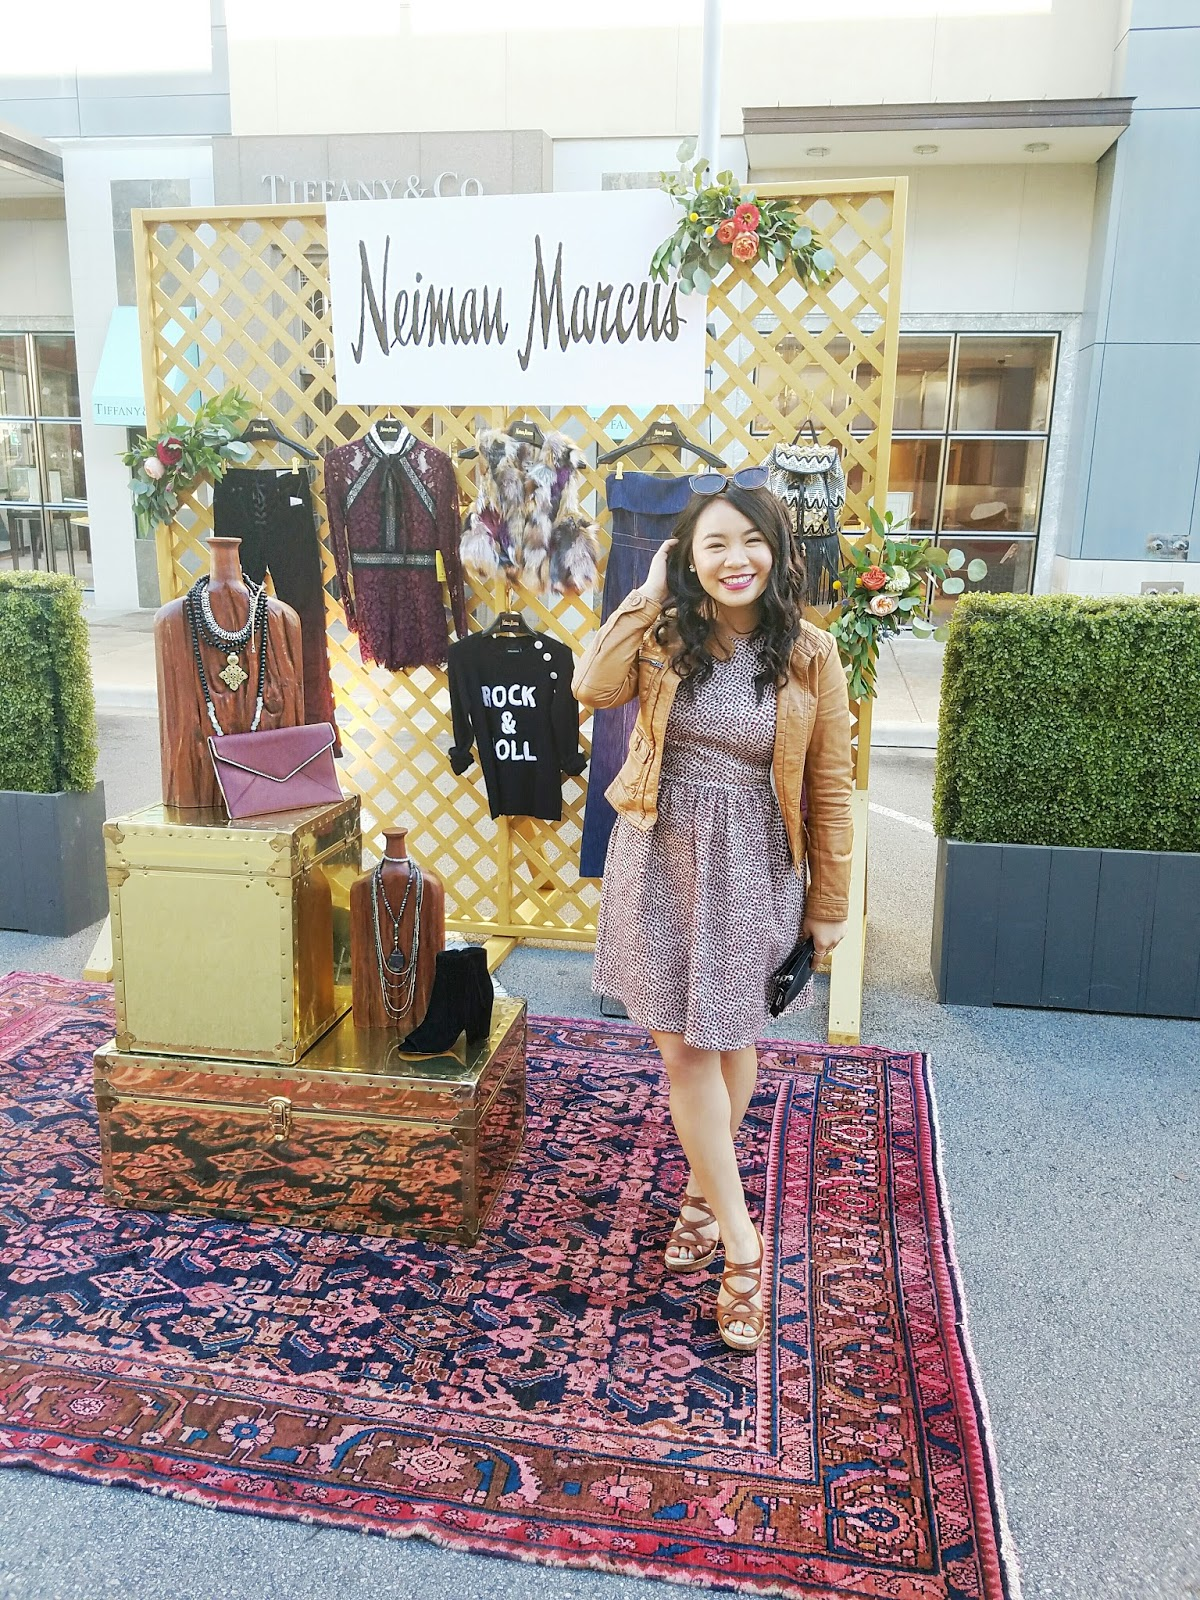 Neiman Marcus Event in Austin, Texas